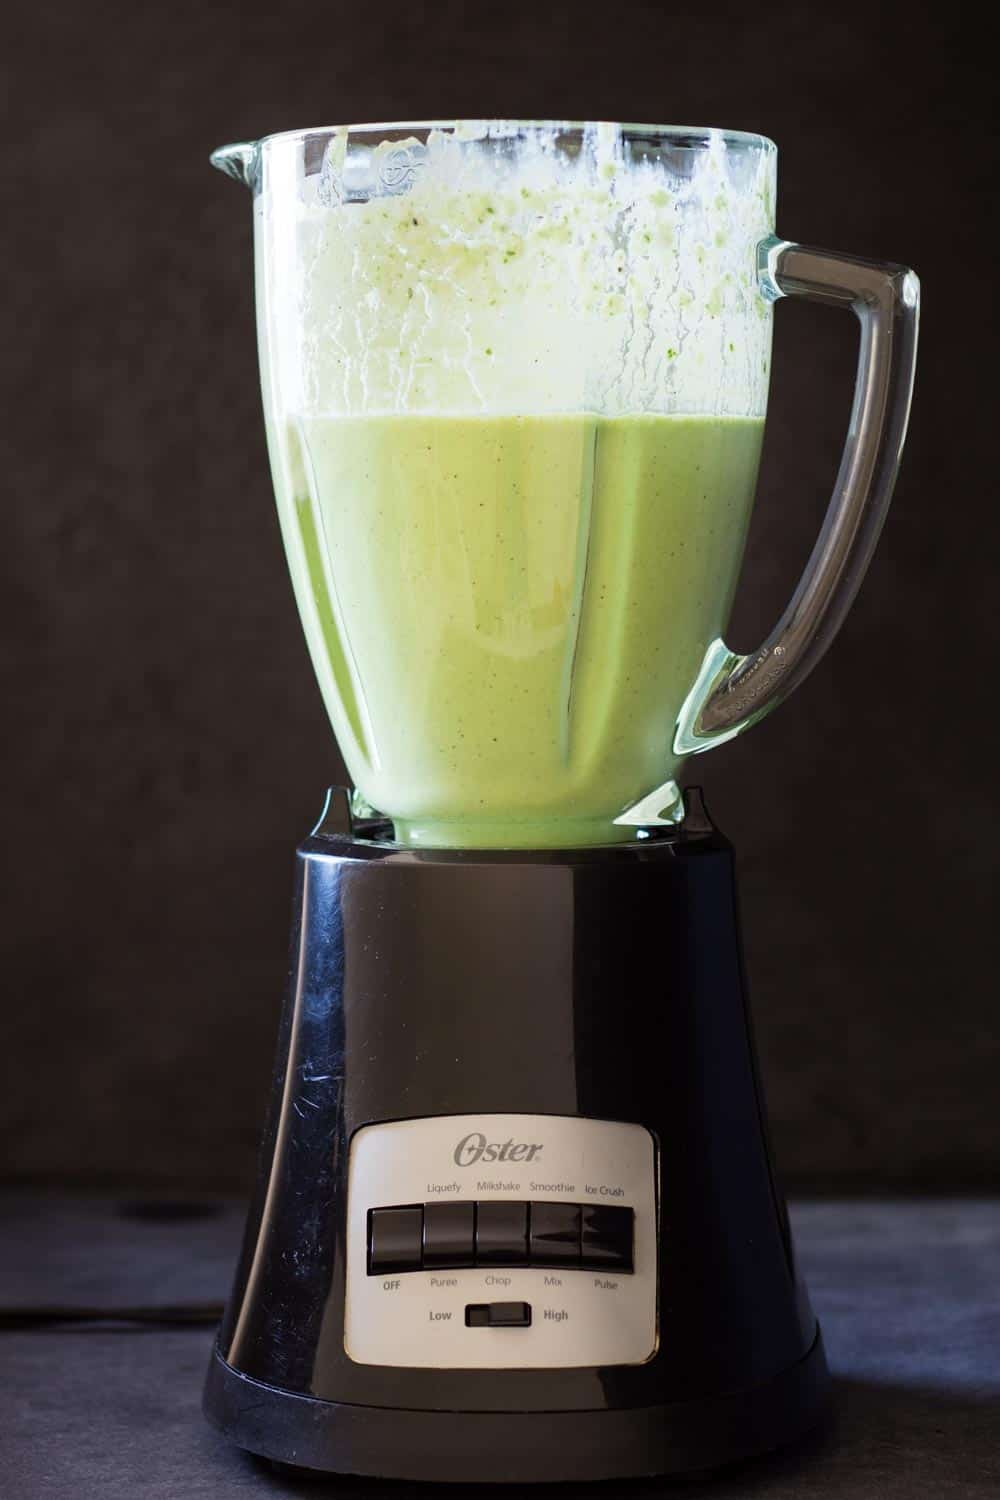 A Greek Yogurt Green Smoothie that is healthy but doesn't taste like grass. A total win to replace your unhealthy breakfast or afternoon snack!